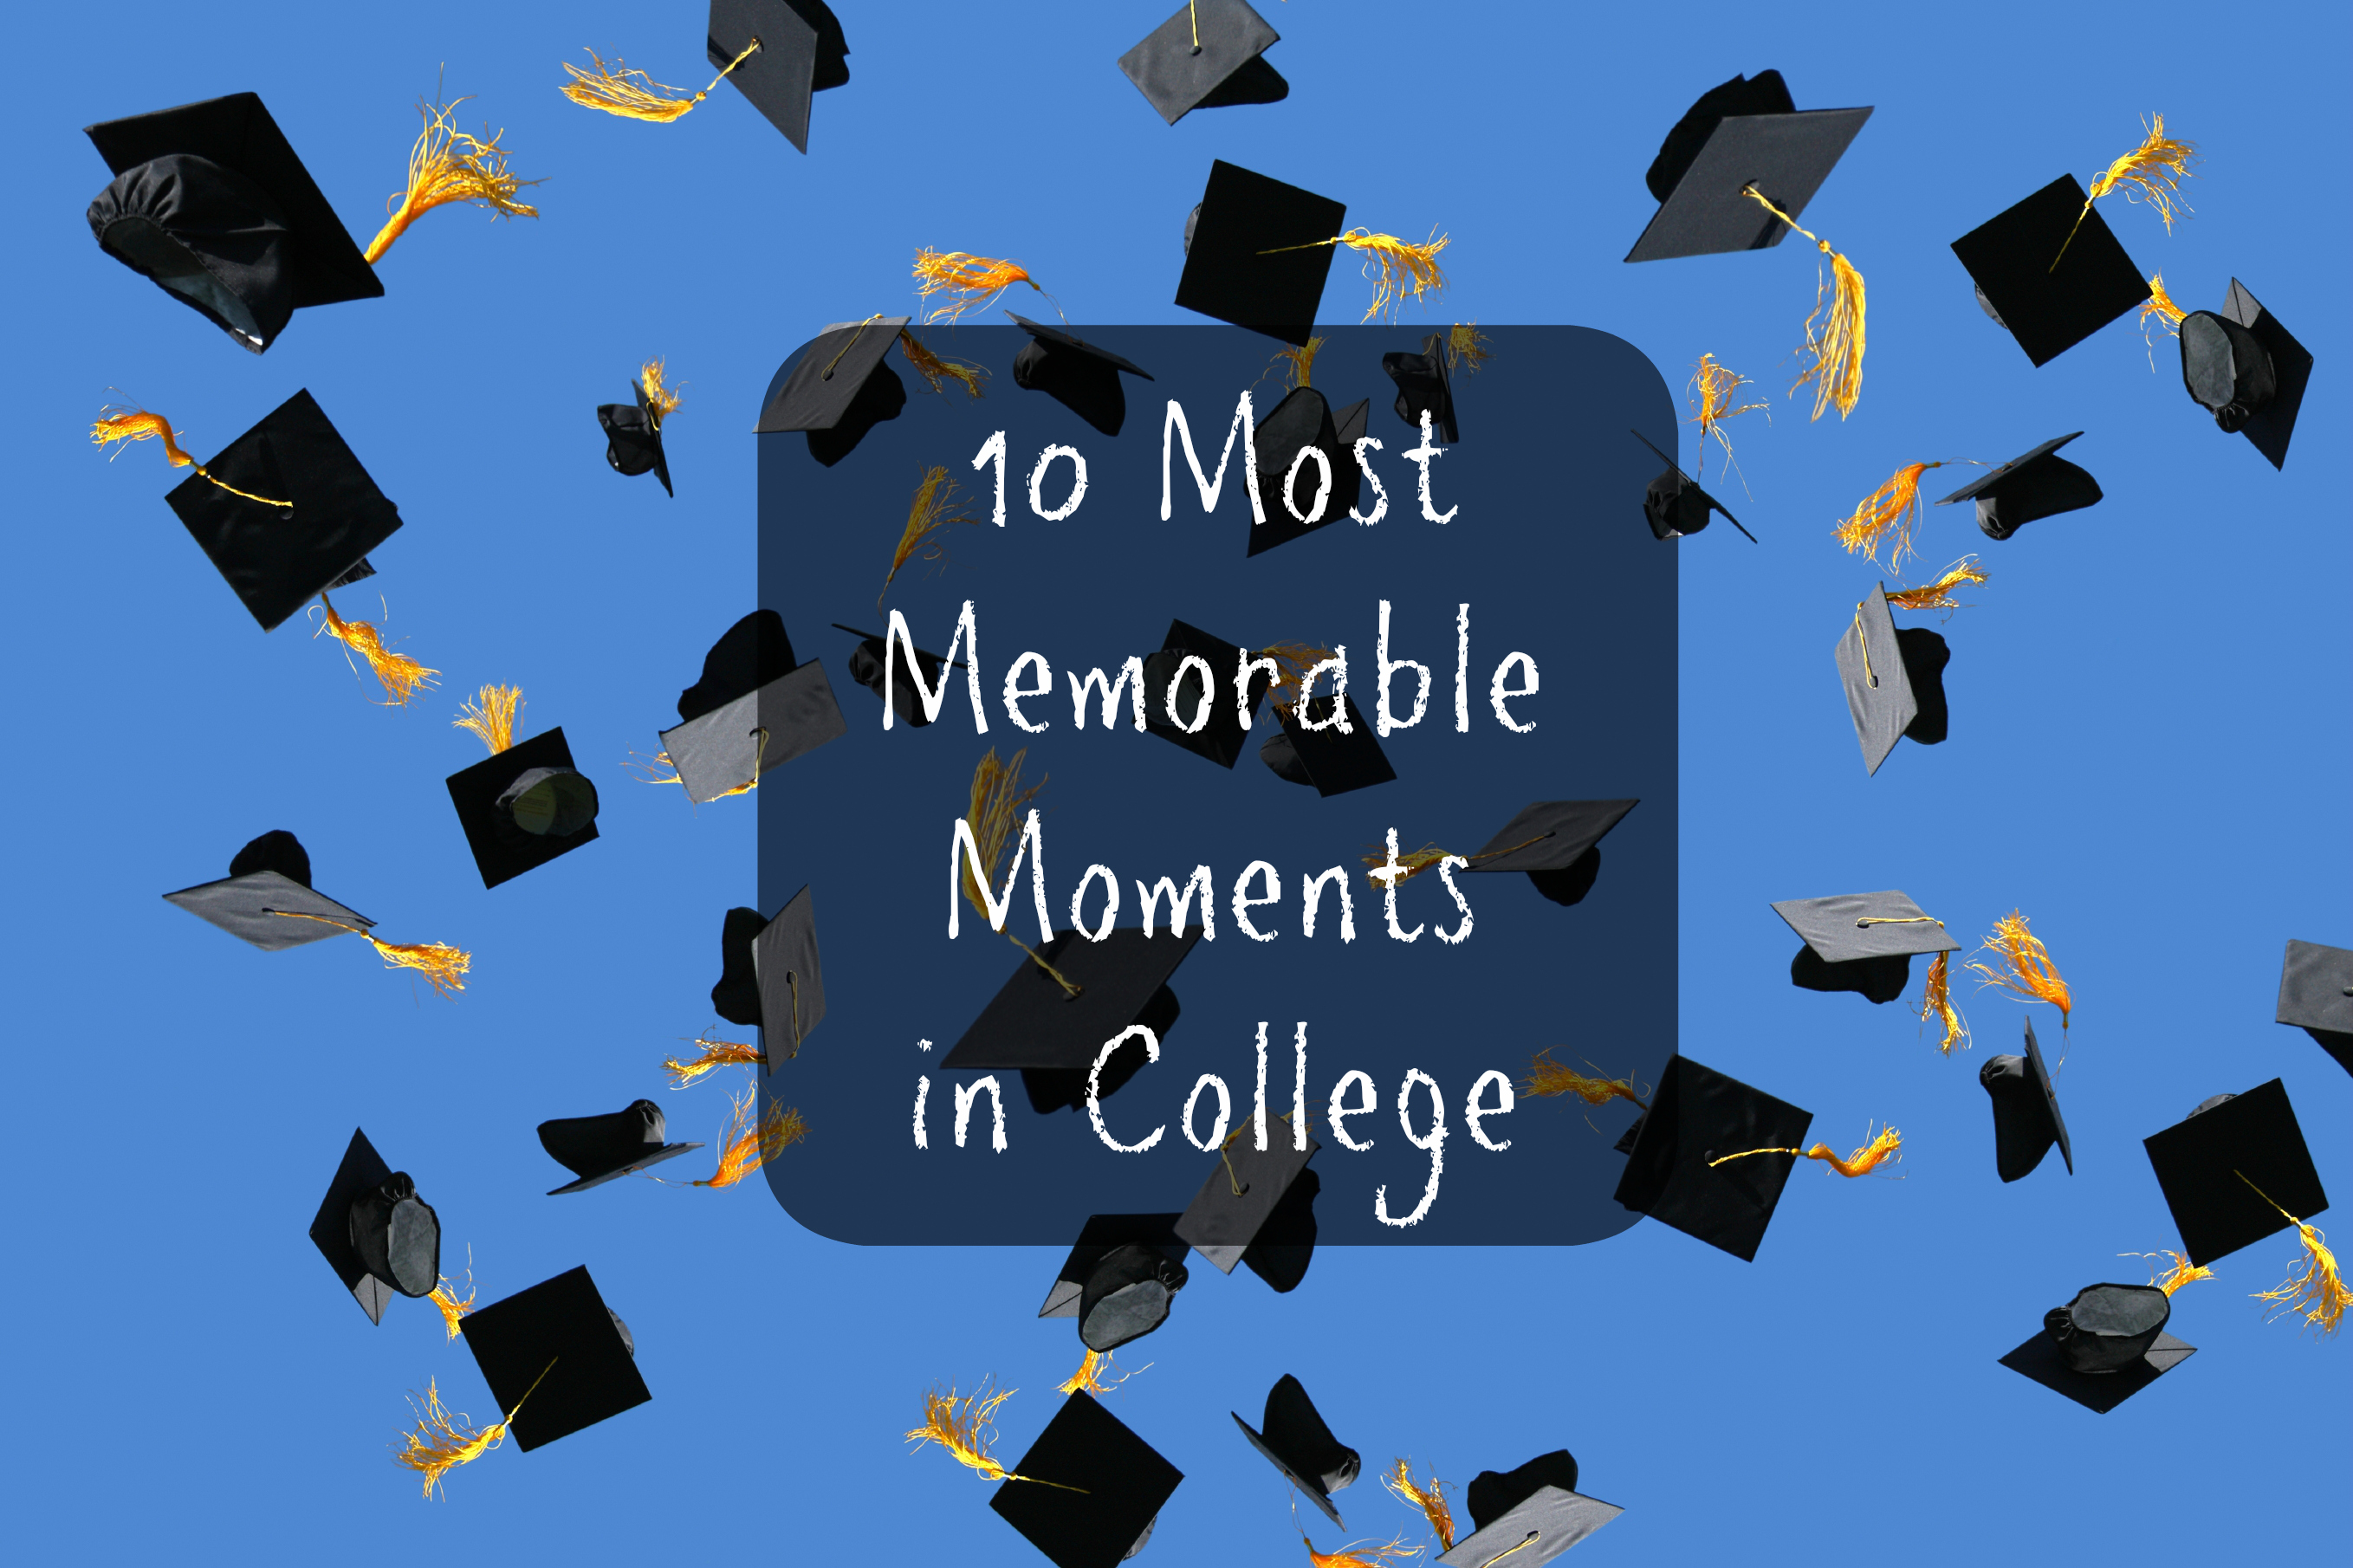 most memorable moments in college throwbackthursday a 10 most memorable moments in college throwbackthursday a deecoded life